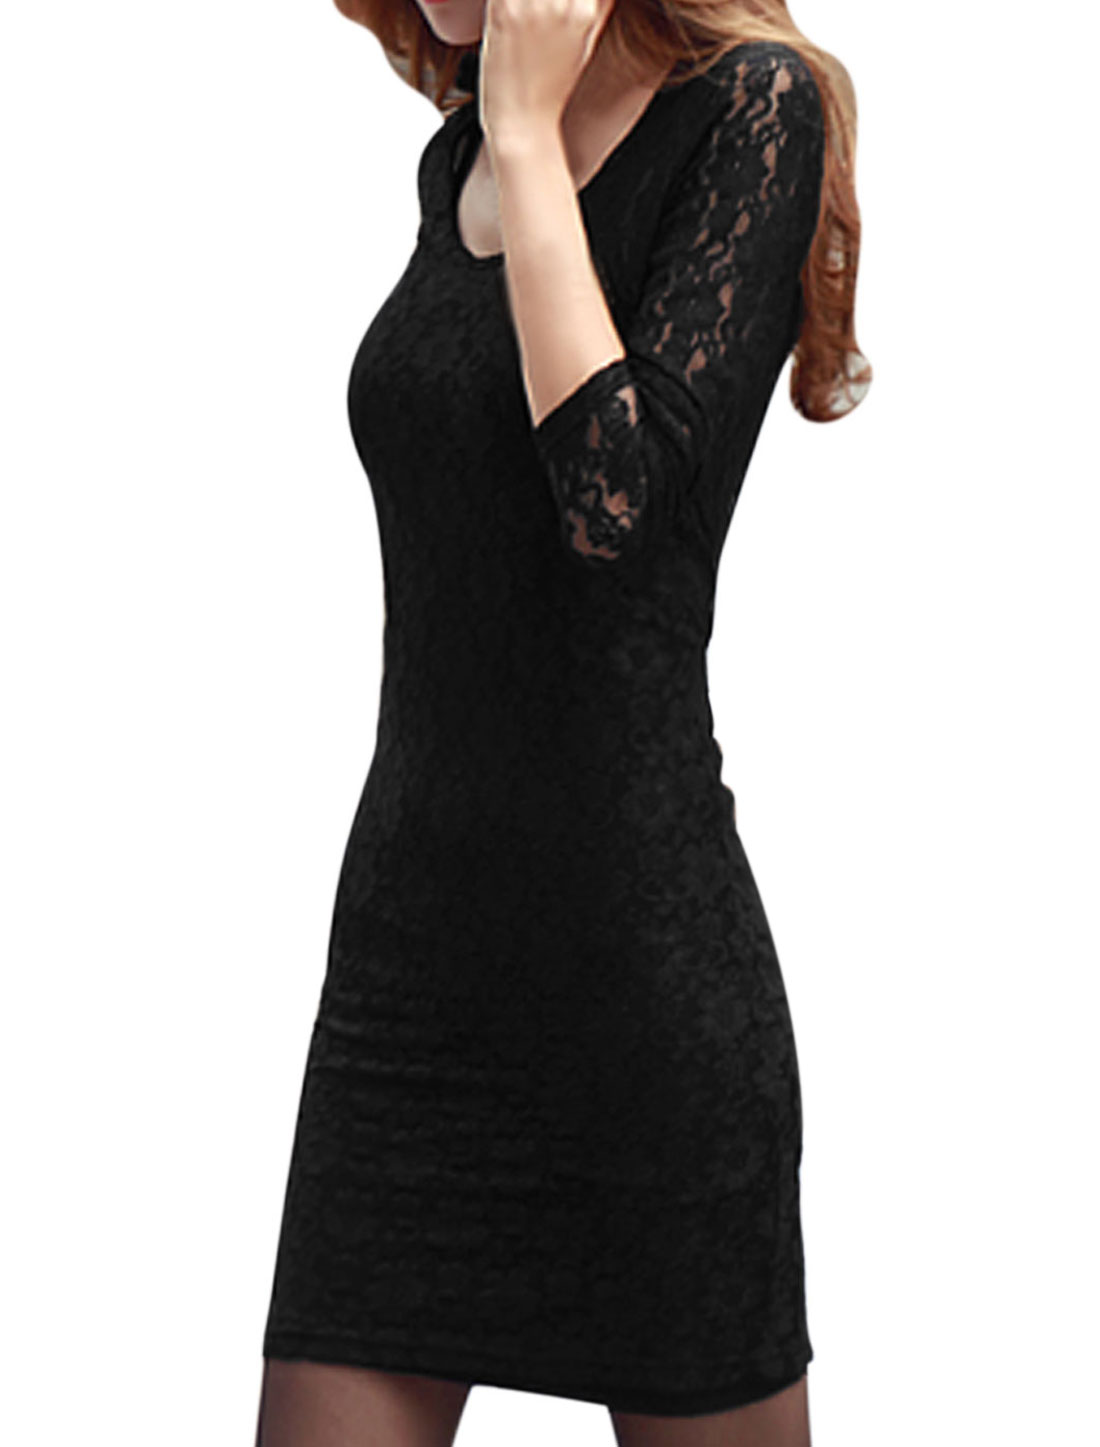 Women Round Neck Semi Sheer Long Sleeves Lace Sheath Dress Black M